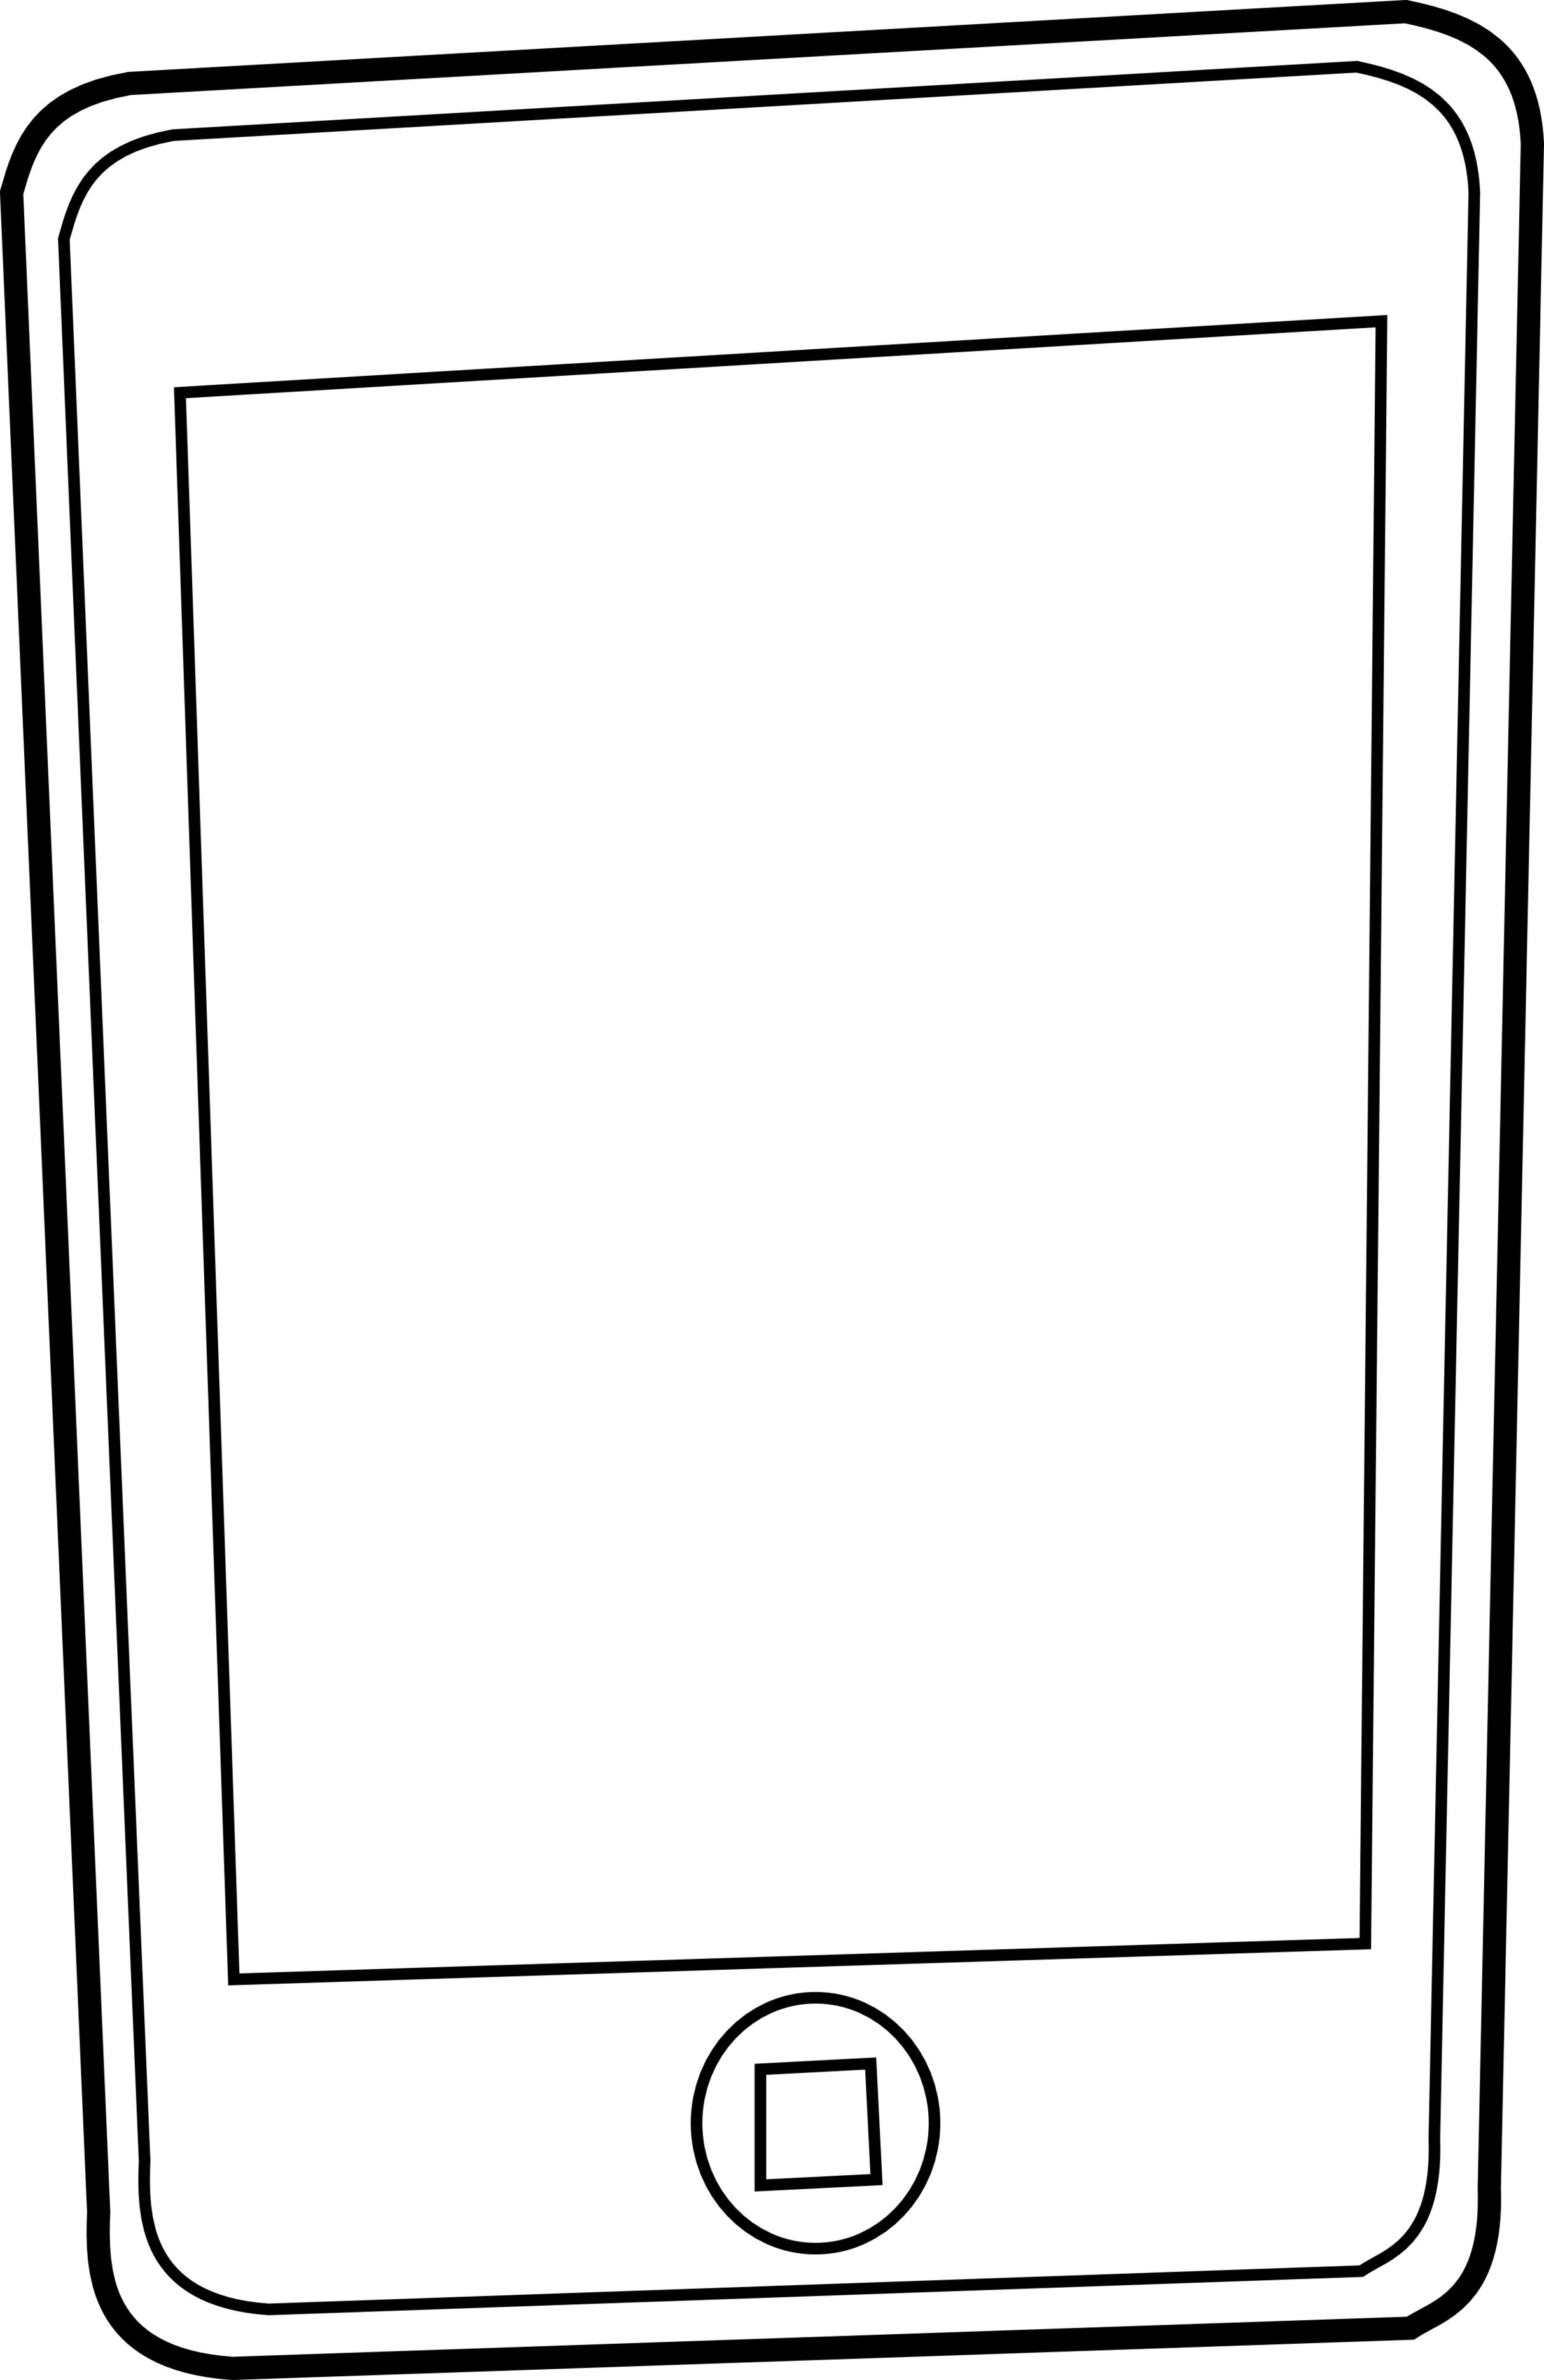 Cell phone clipart black and white collection.